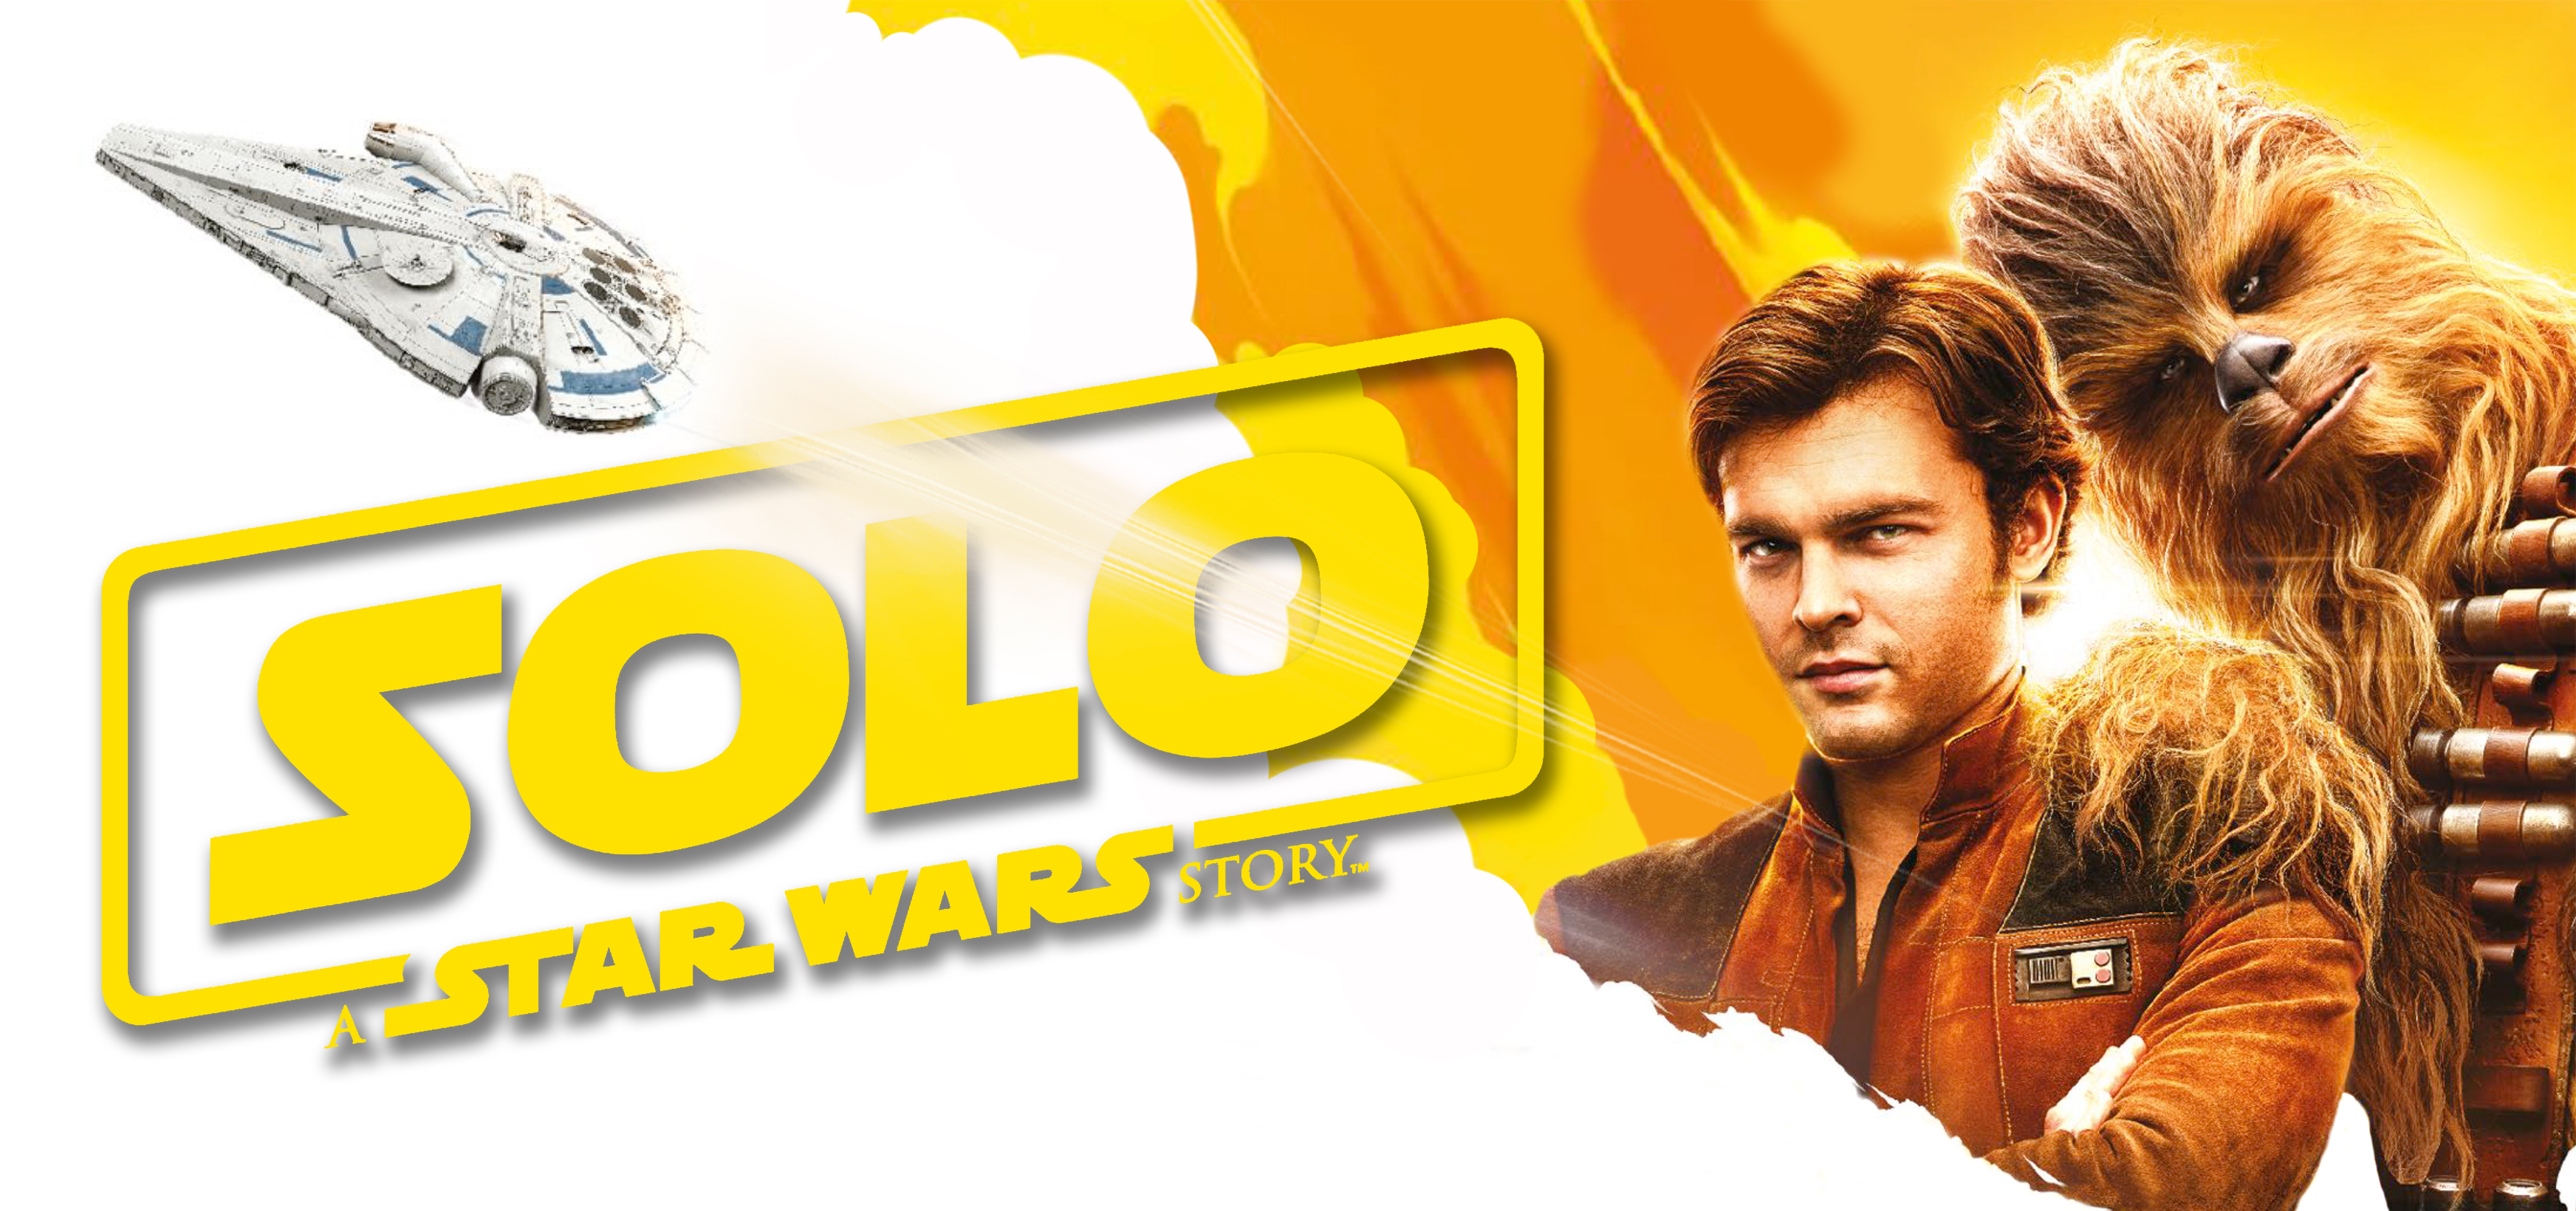 solo-stars-wars-movie-dealsshutter